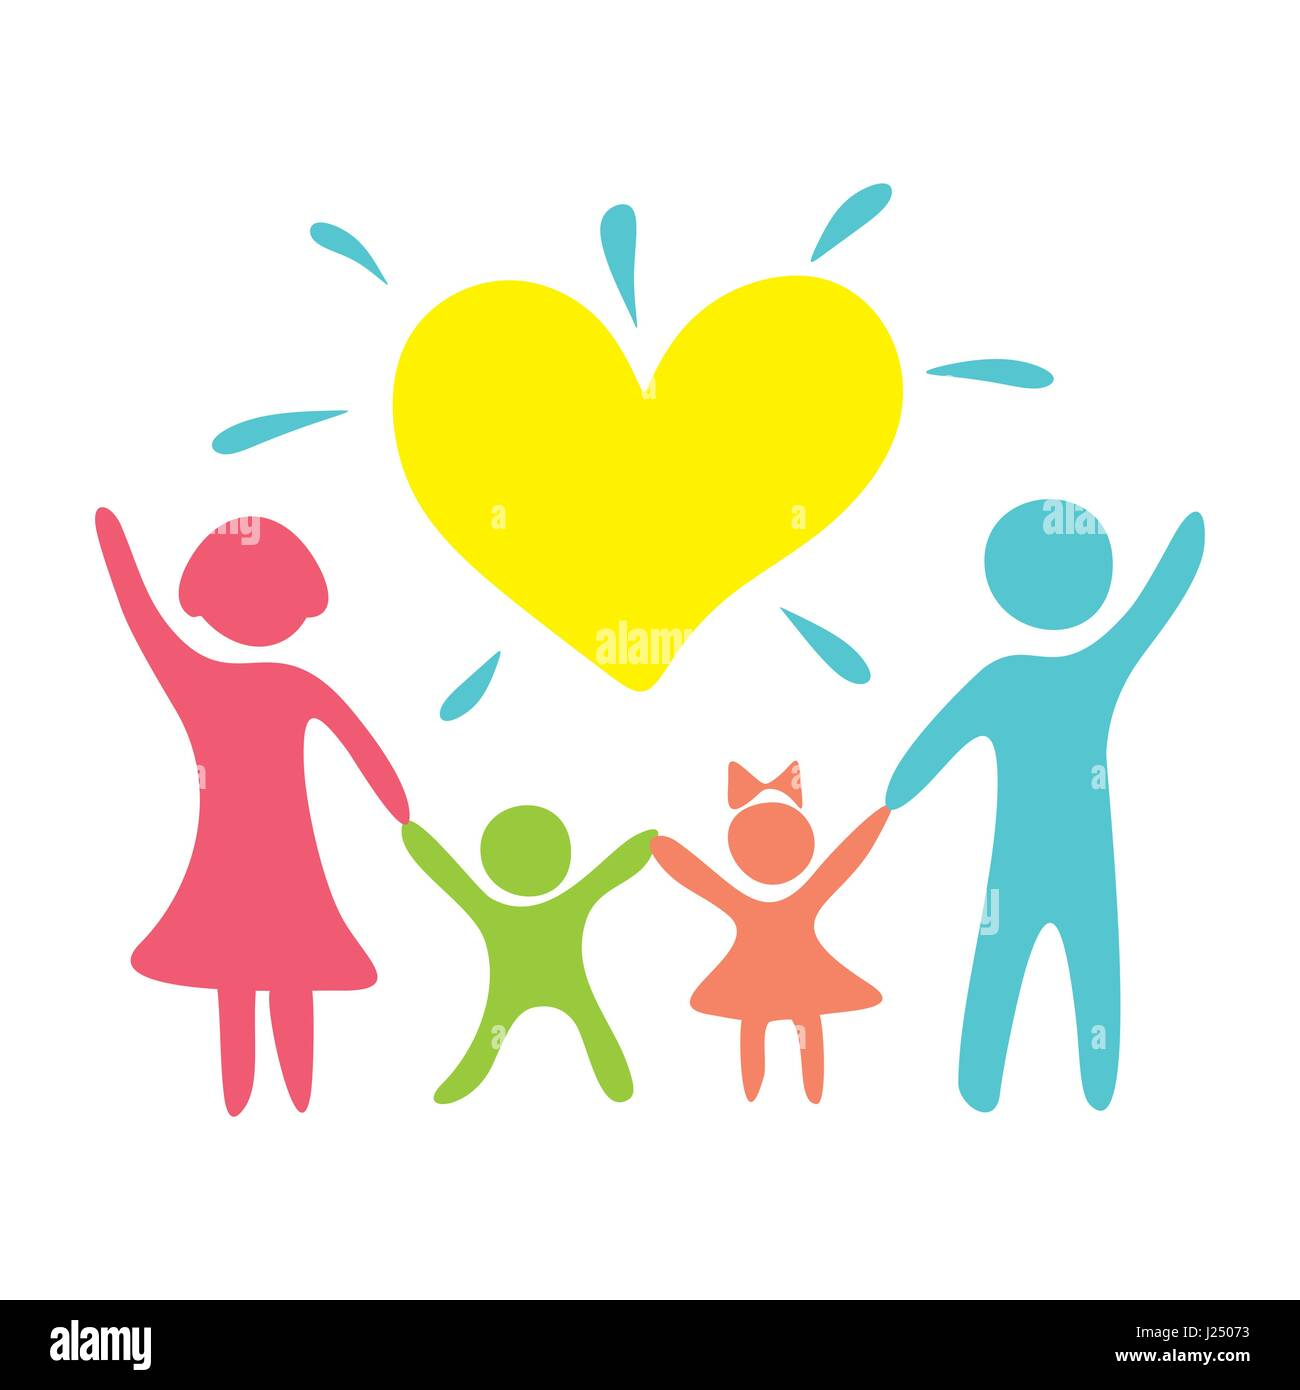 Love Each Other Religious: A Happy Christian Family Based On Love For Each Other And